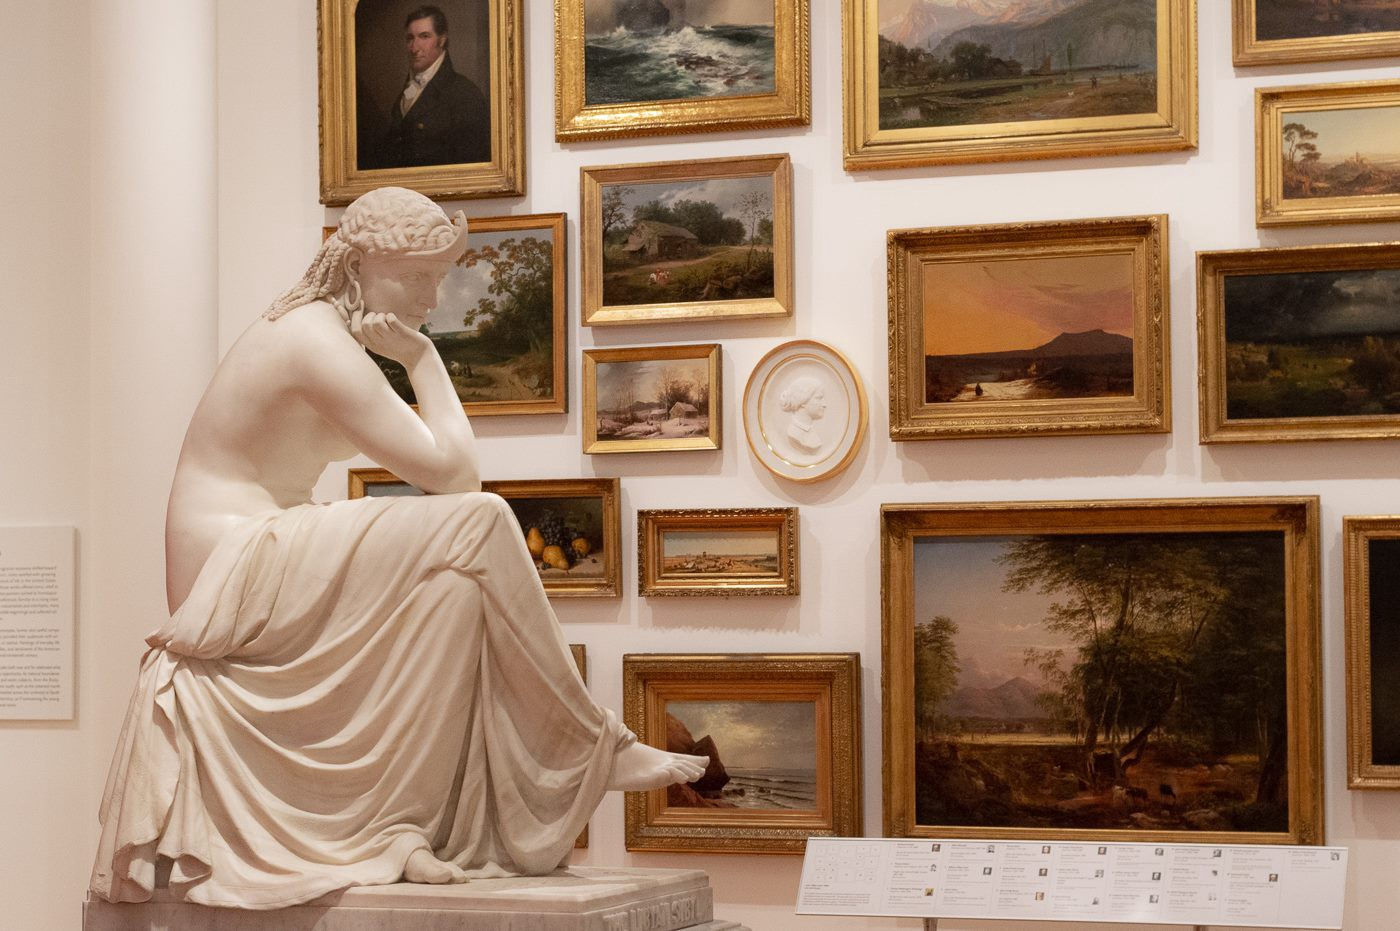 A neoclassical sculpture of a seated woman sits in front of a salon wall of paintings.